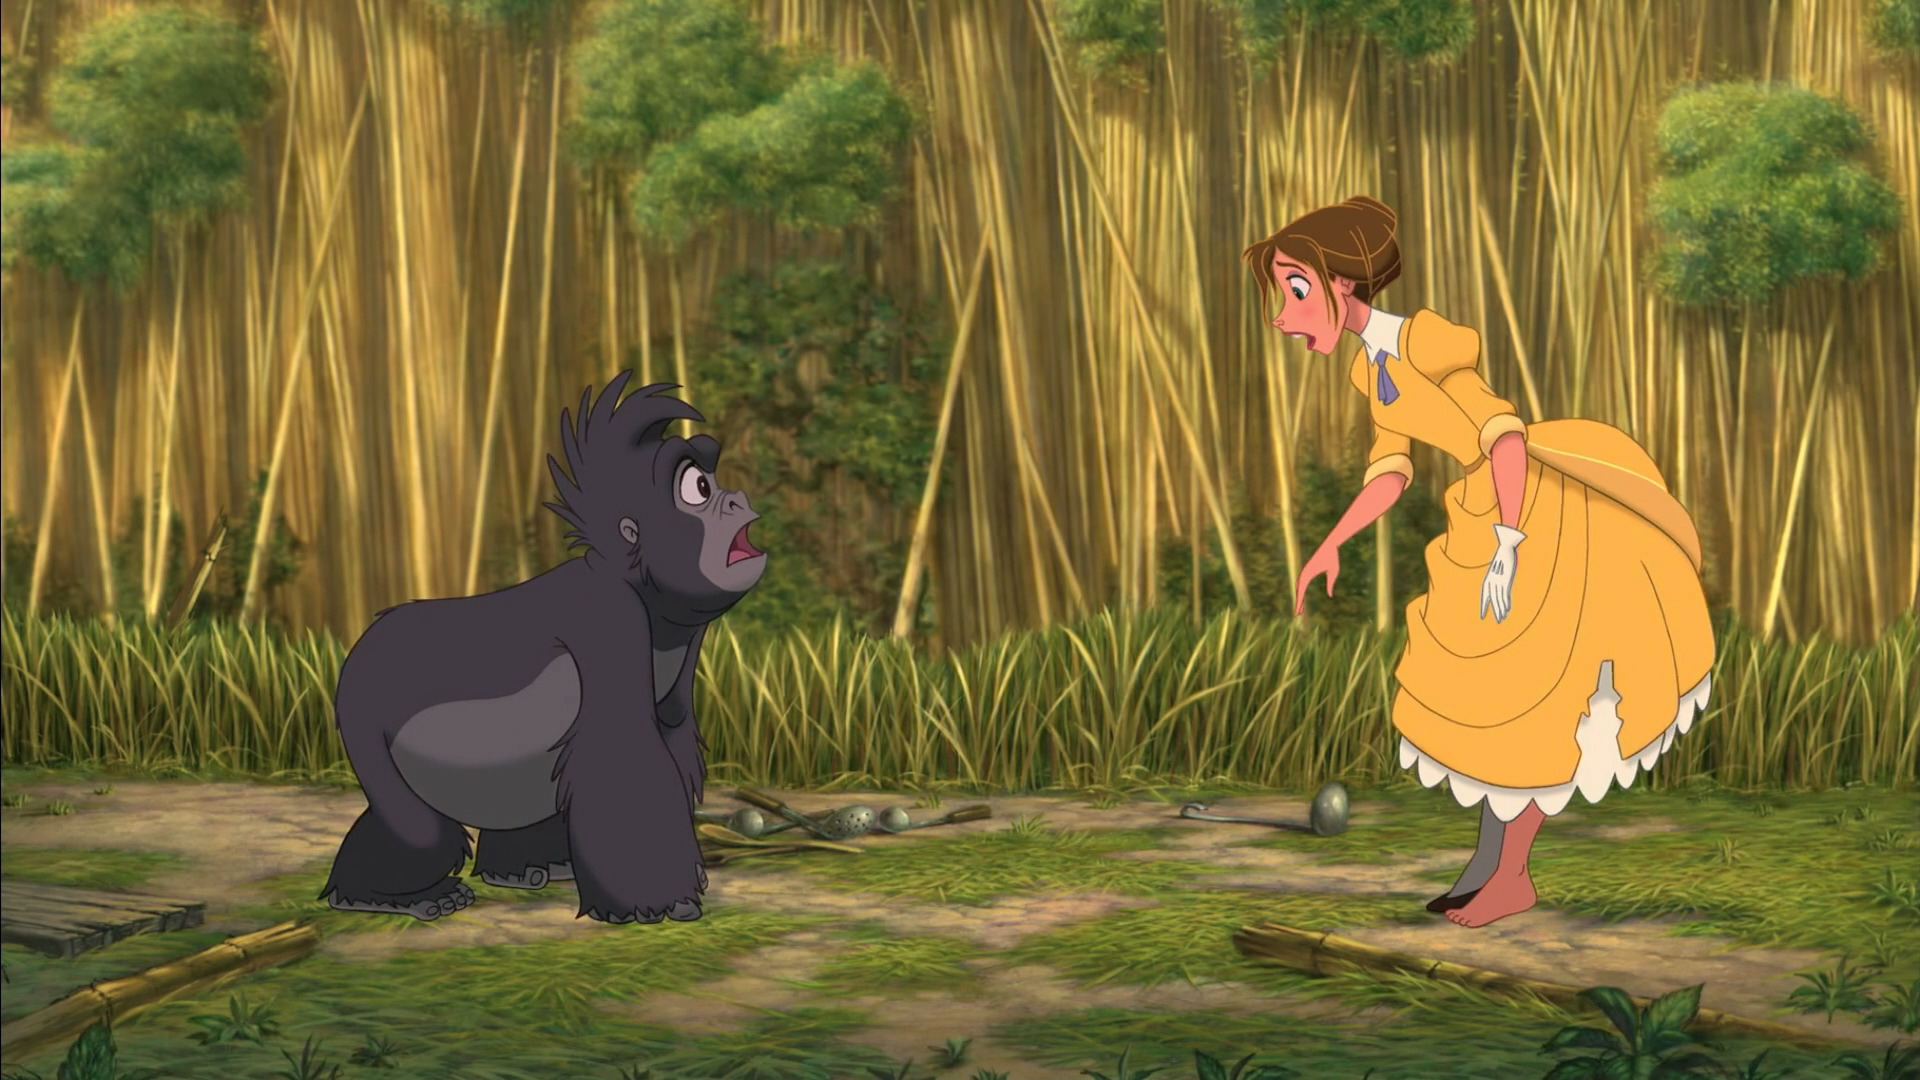 """tarzan personals Jane needs to ing ask out tarzan not hint, not flirt, not """"give signs to approach,"""" ask his a$& out end of discussion."""